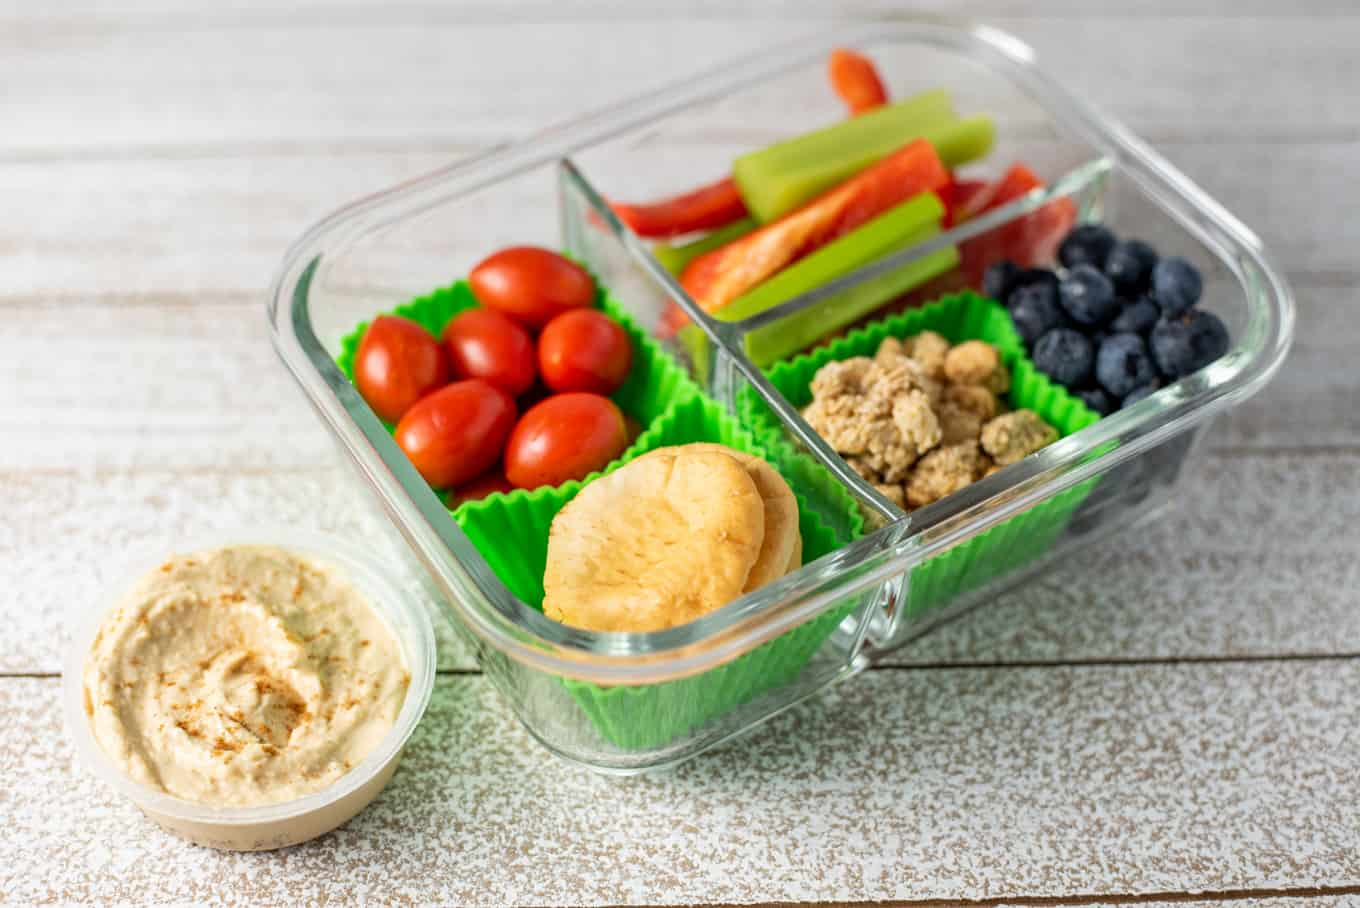 A glass bento box container of crackers, veggie sticks, blueberries, granola, and hummus.